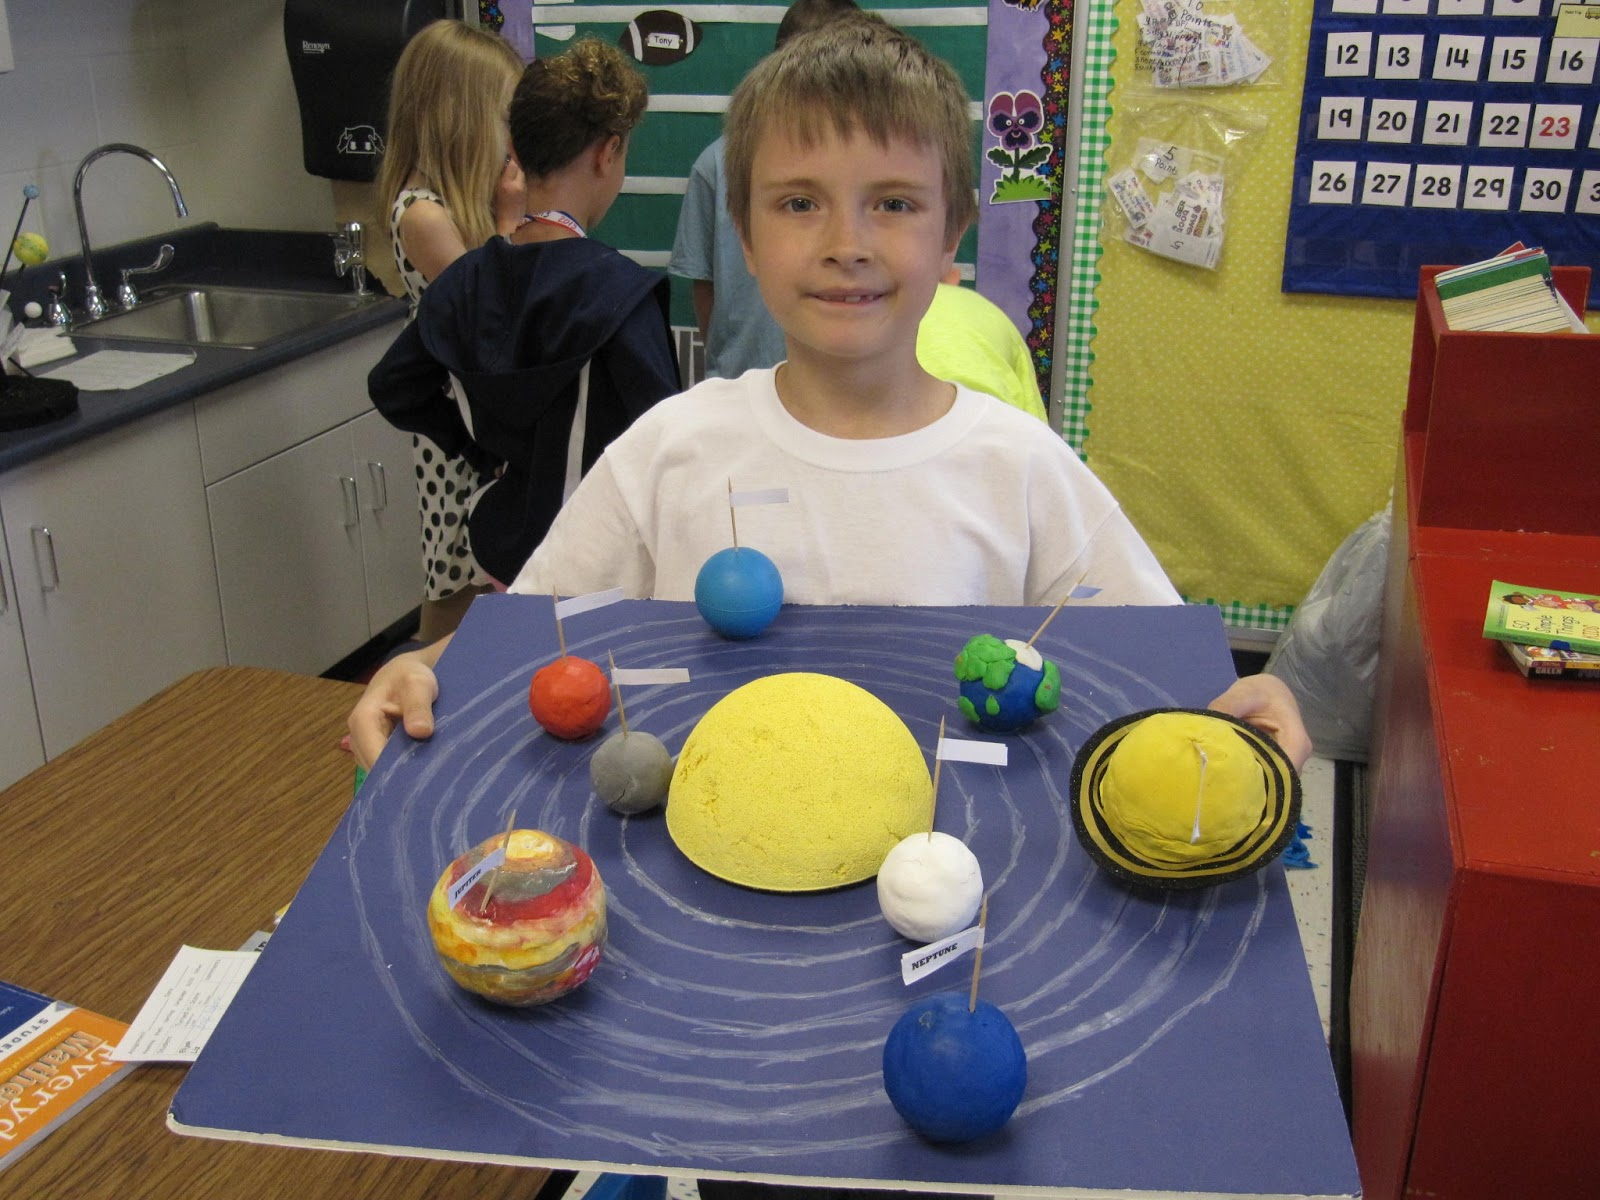 solar system projects for 3rd grade - photo #36